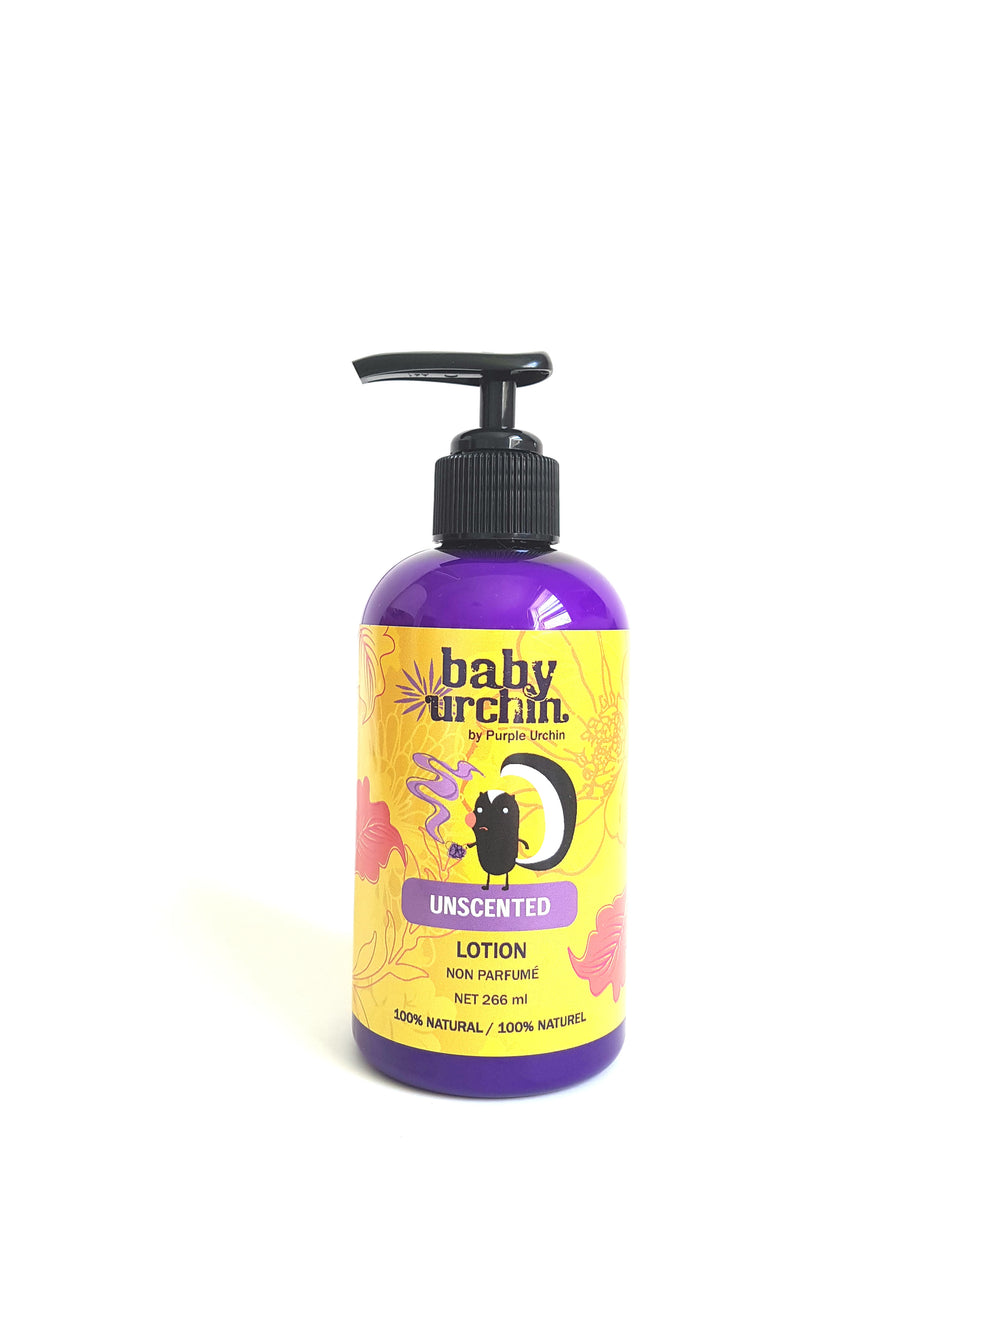 Baby Lotion (Unscented) - Purple Urchin